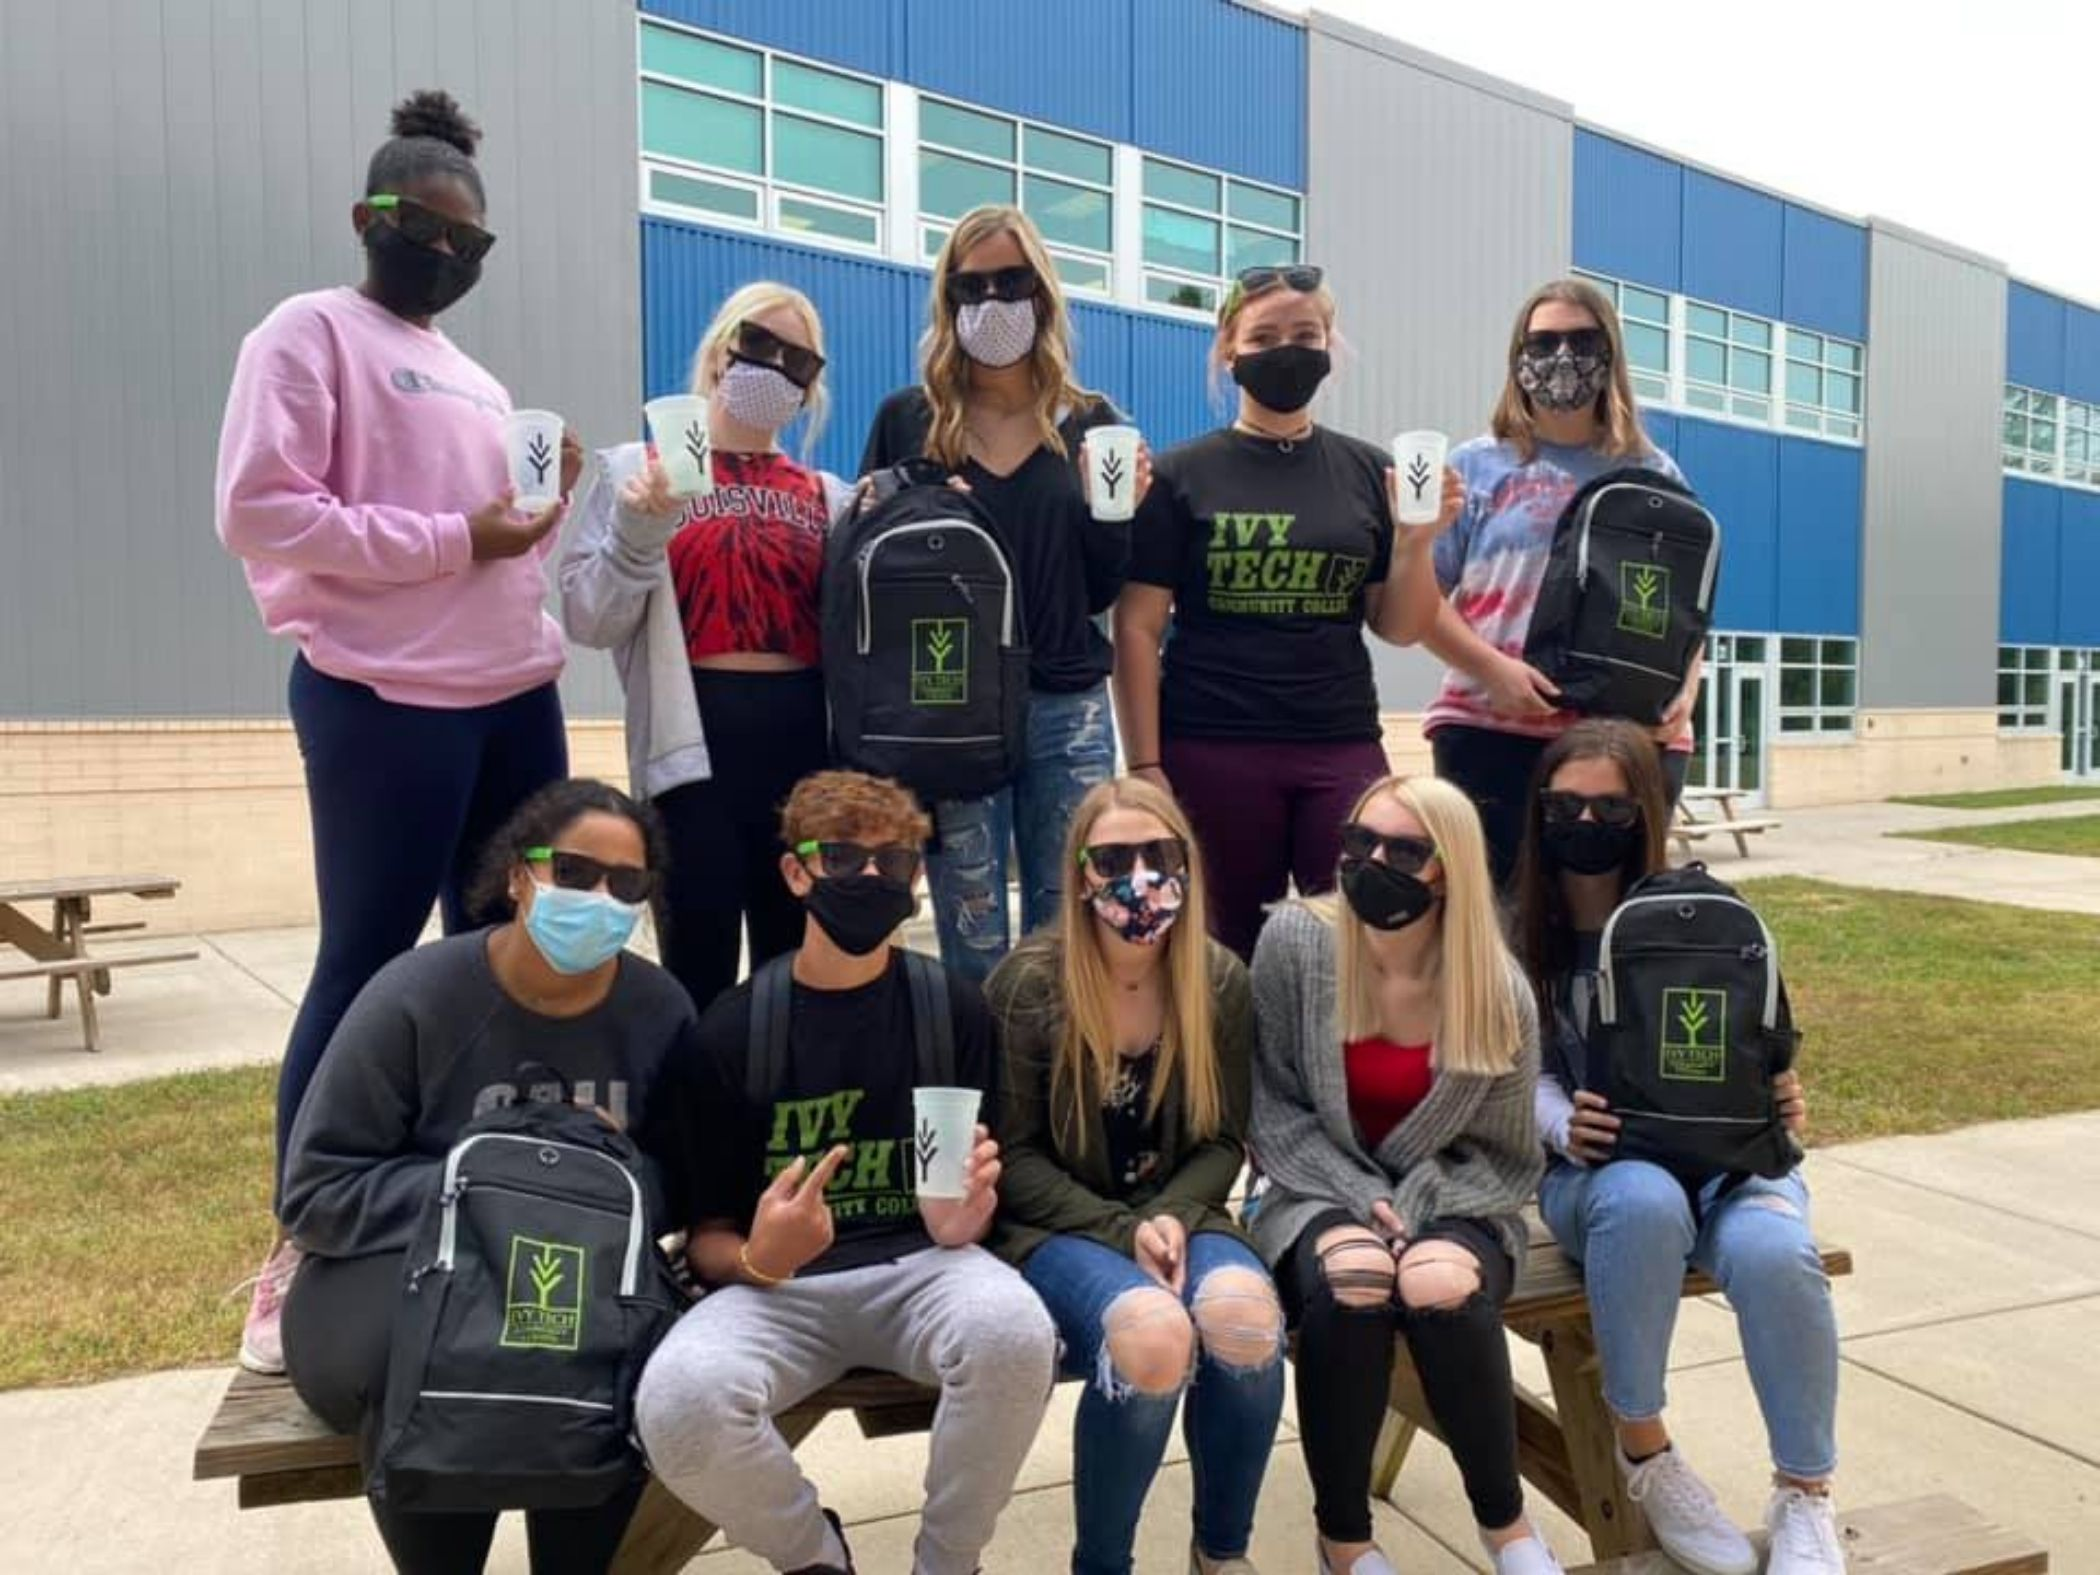 Students posing with Ivy Tech gear